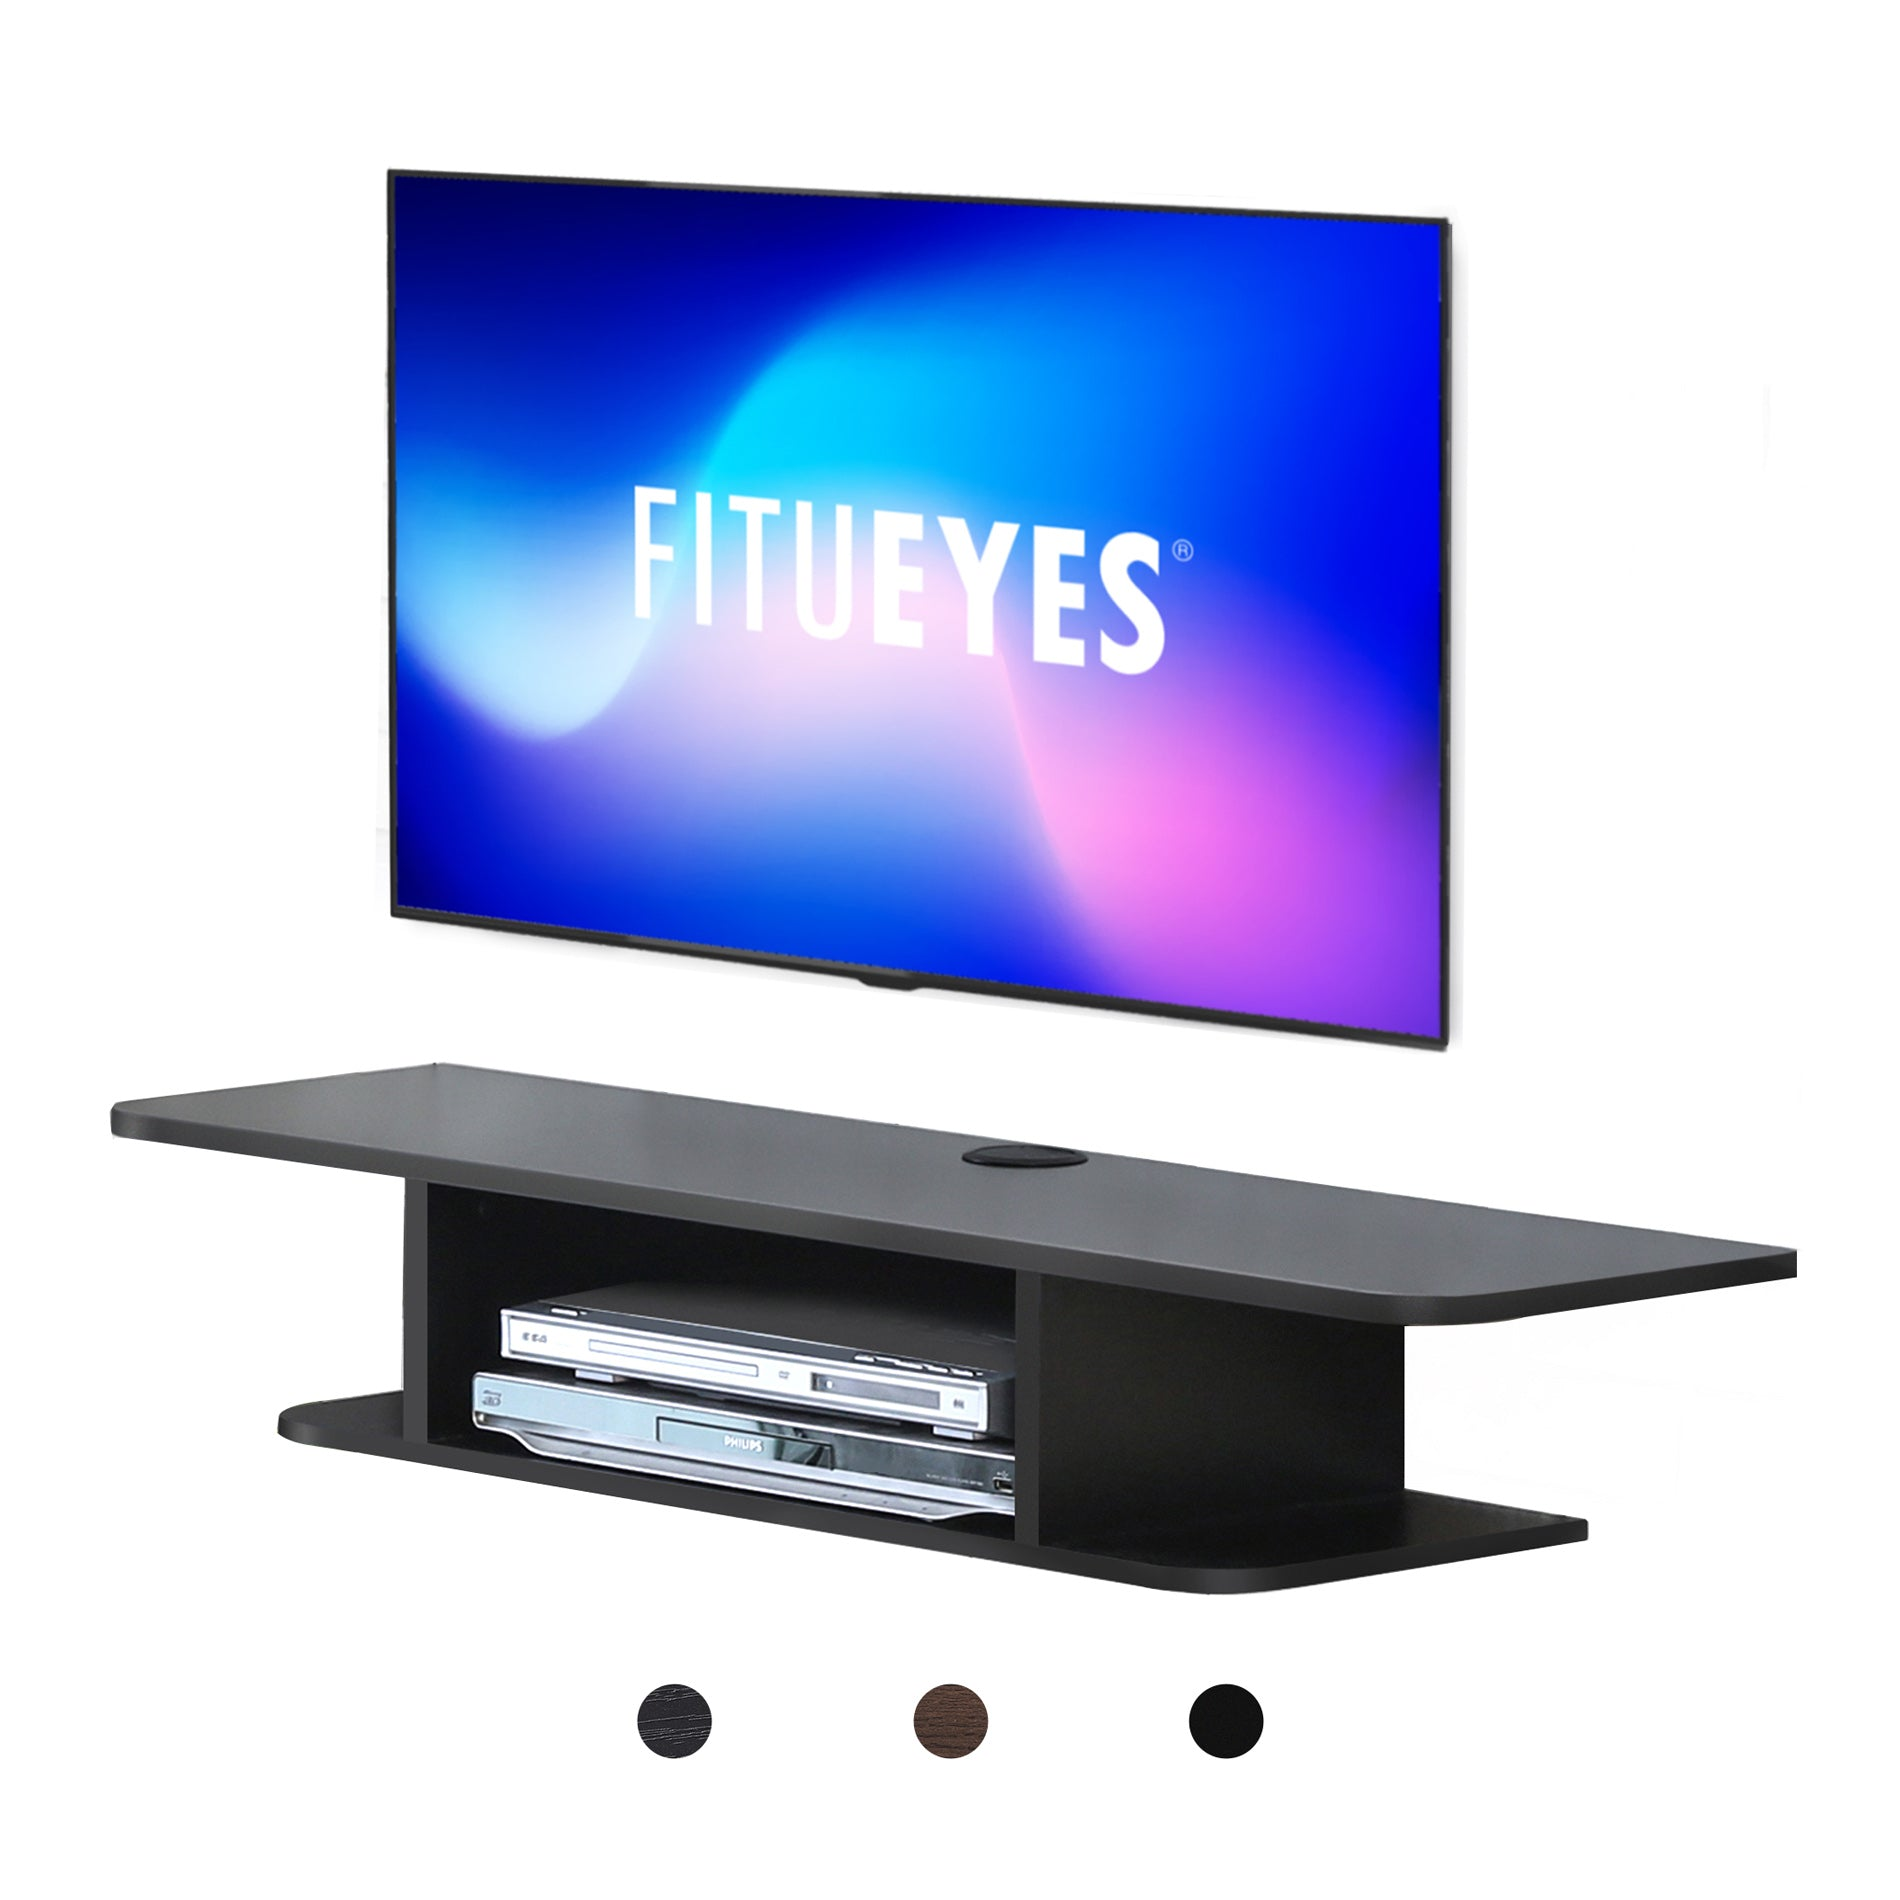 fitueyes tv stand entertainment center media furniture fit curved  - fitueyes tv stand entertainment center media furniture fit curved screen tvstand up to inch flat panel curved tvs load  lbs blacktsgb